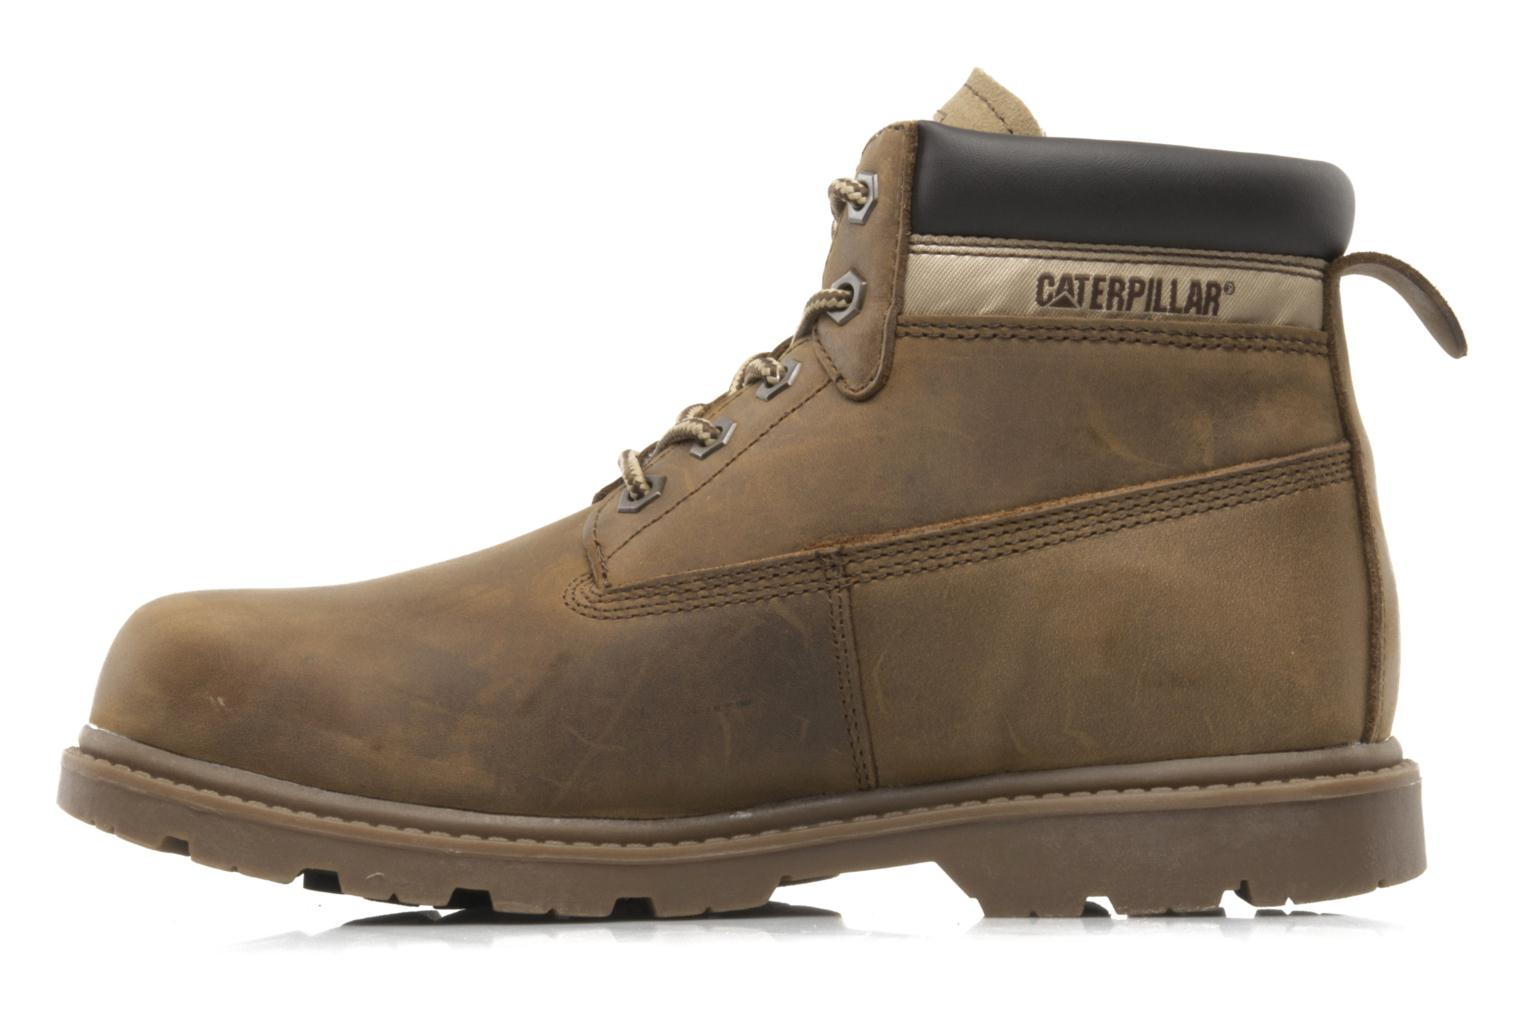 Bottines et boots Caterpillar Colorado Plus Marron vue face